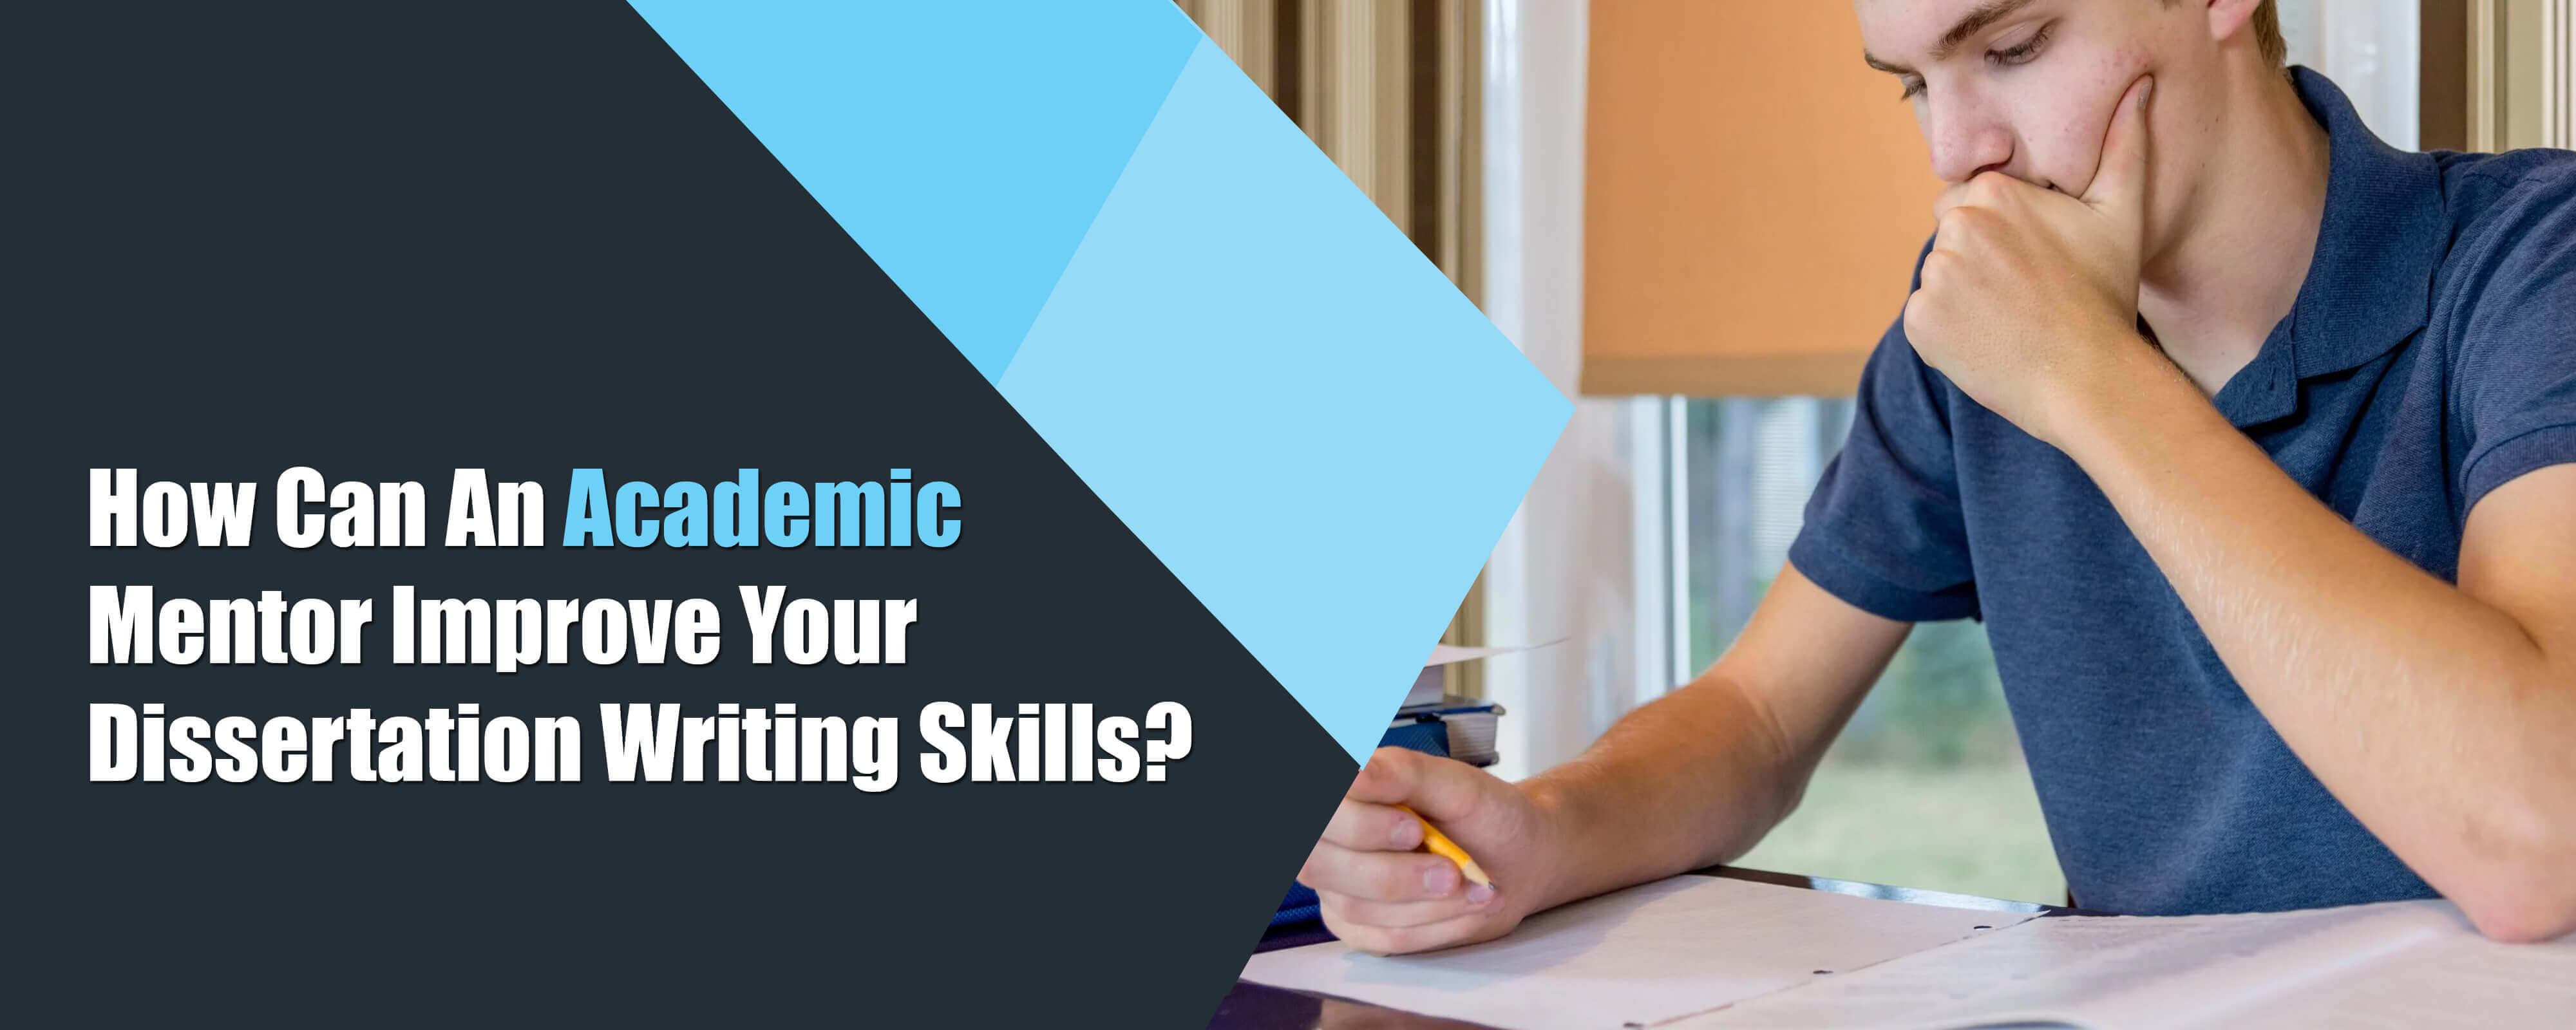 How Can An Academic Mentor Improve Your Dissertation Writing Skills?